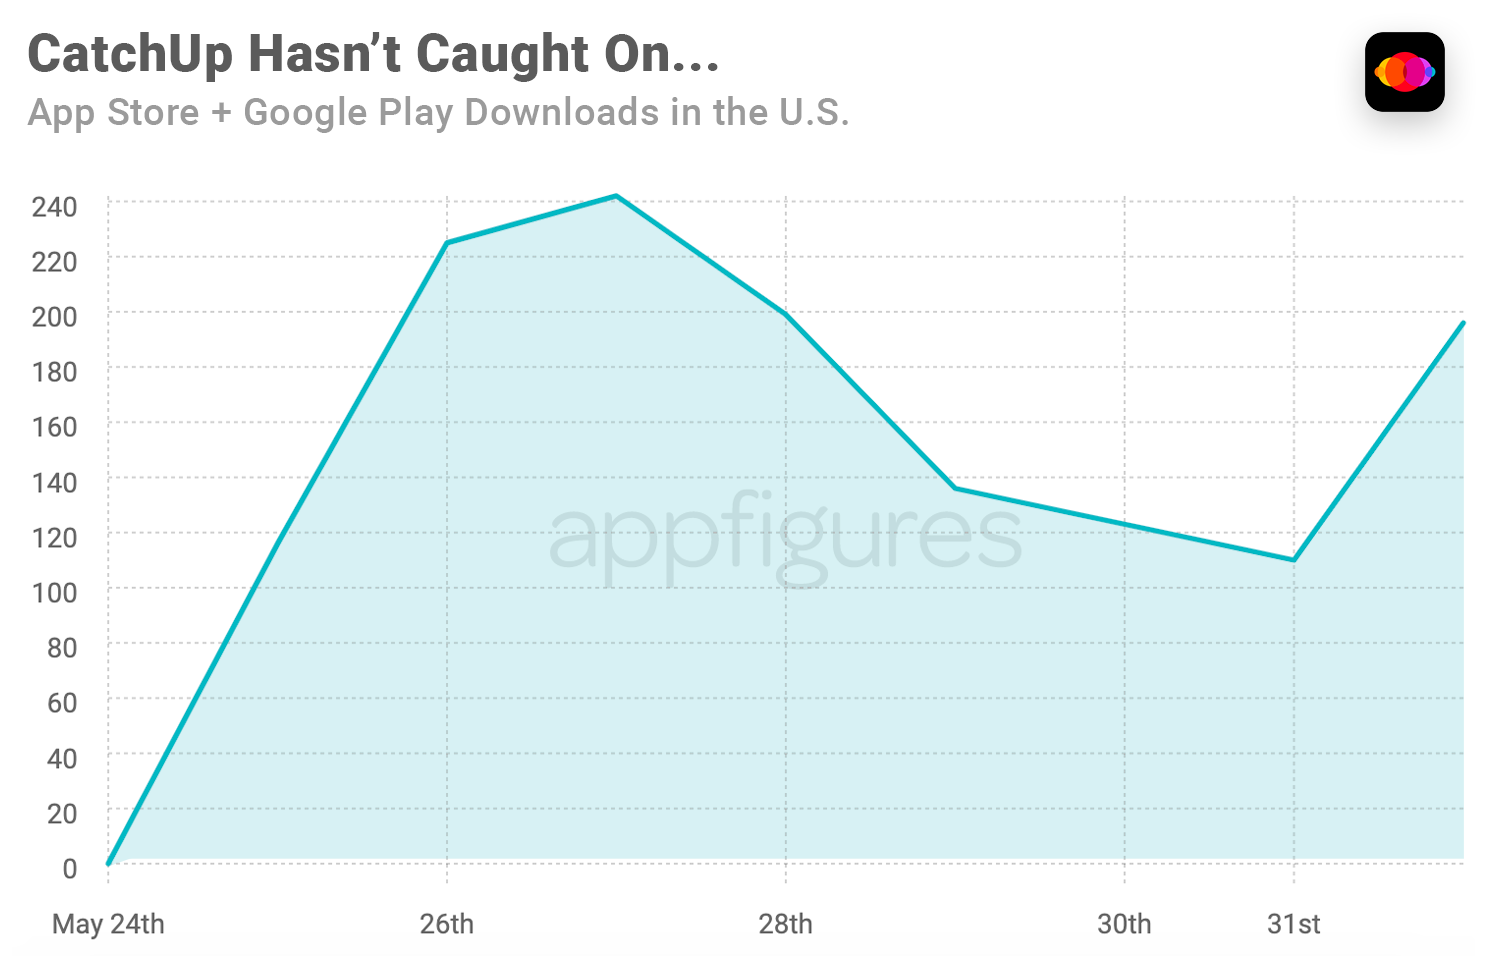 CatchUp downloads in the U.S.